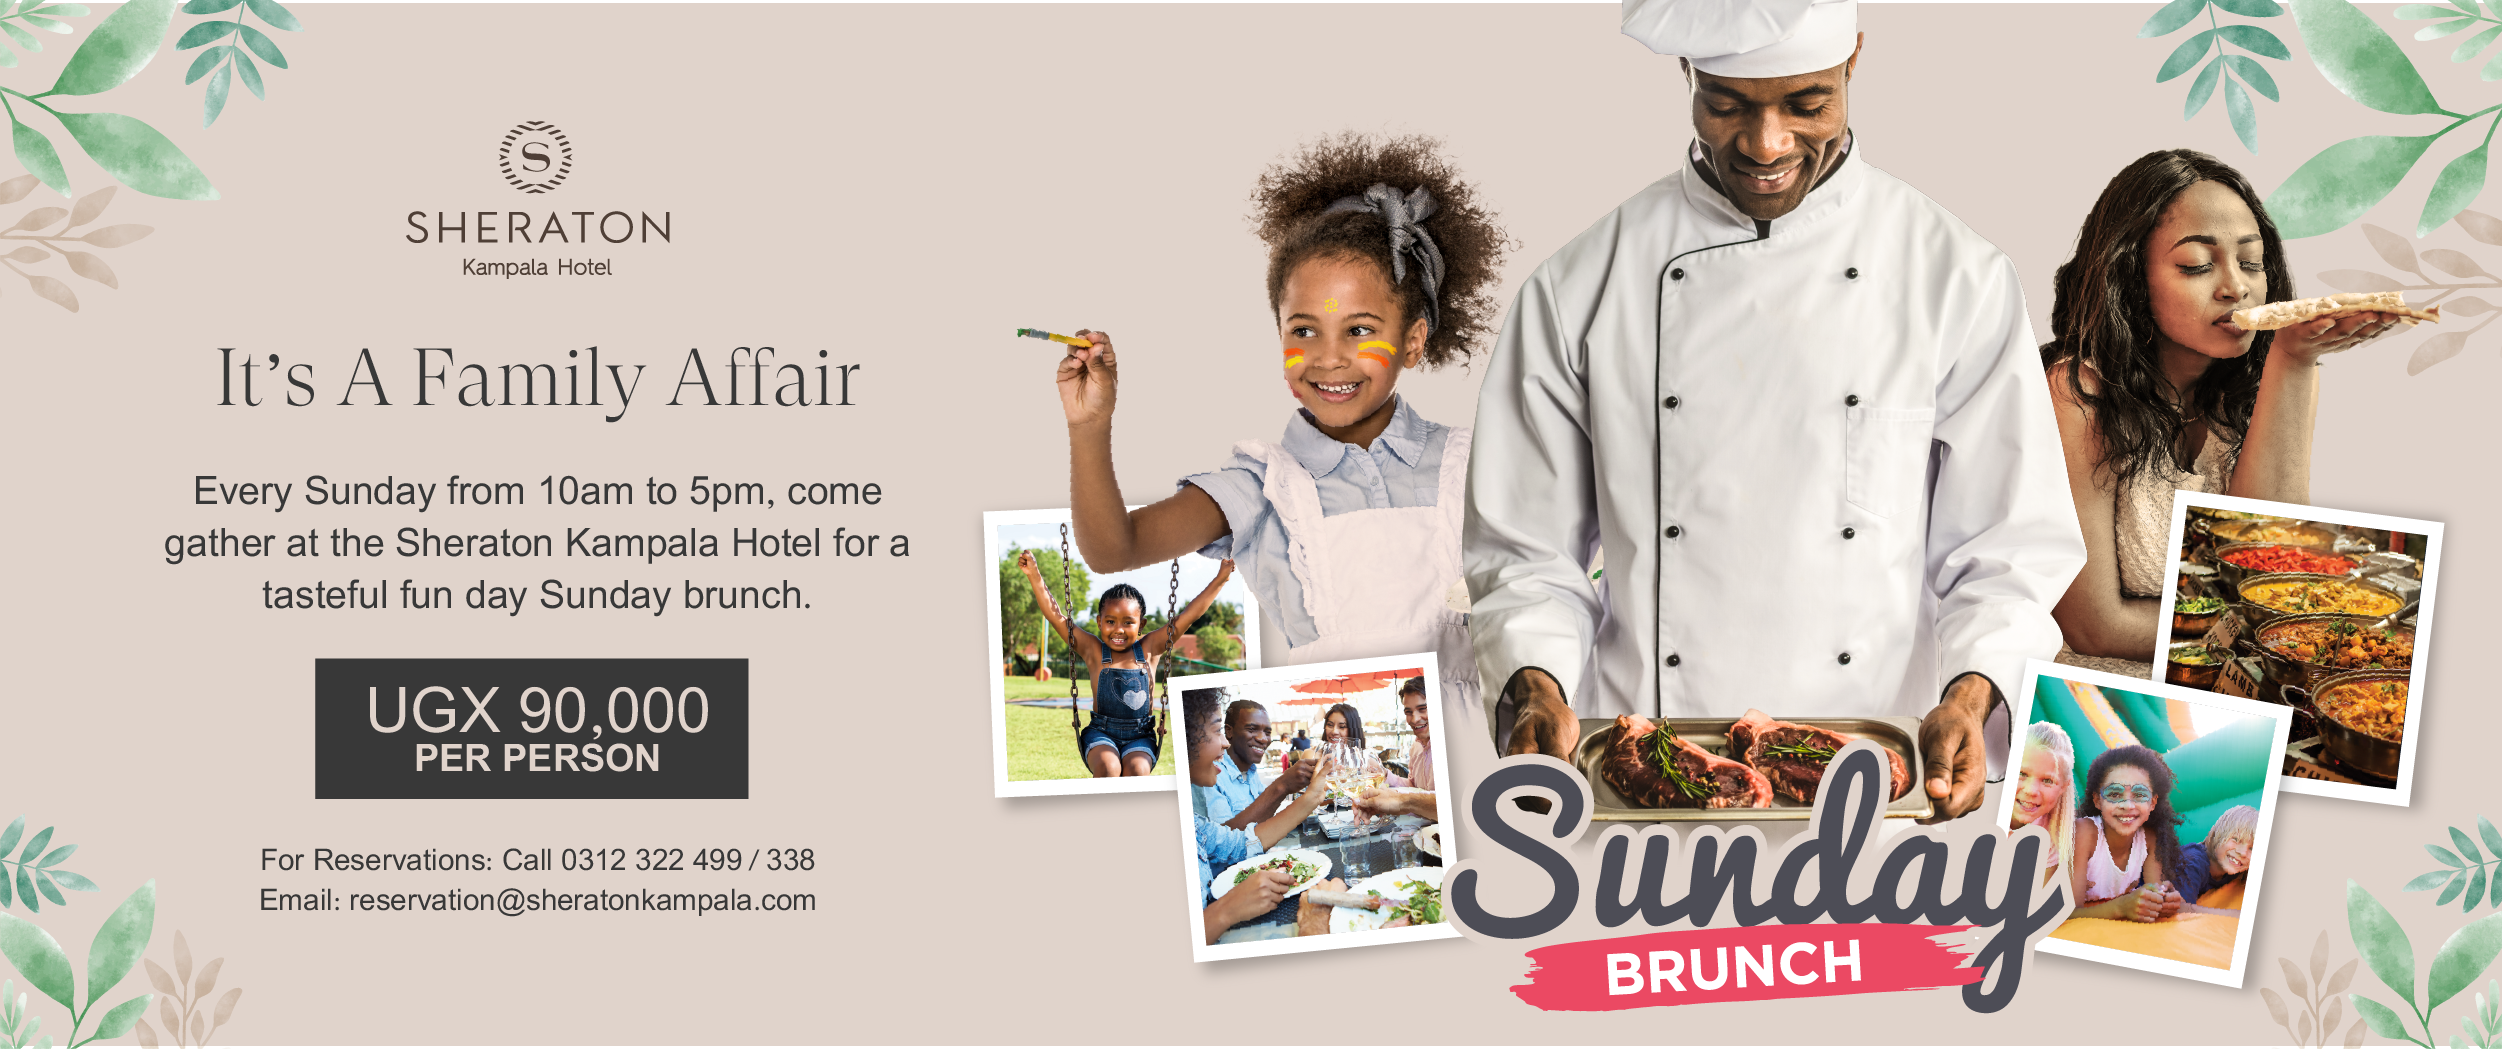 Sunday Family Brunch at the Sheraton Kampala Hotel - including ample secure parking!